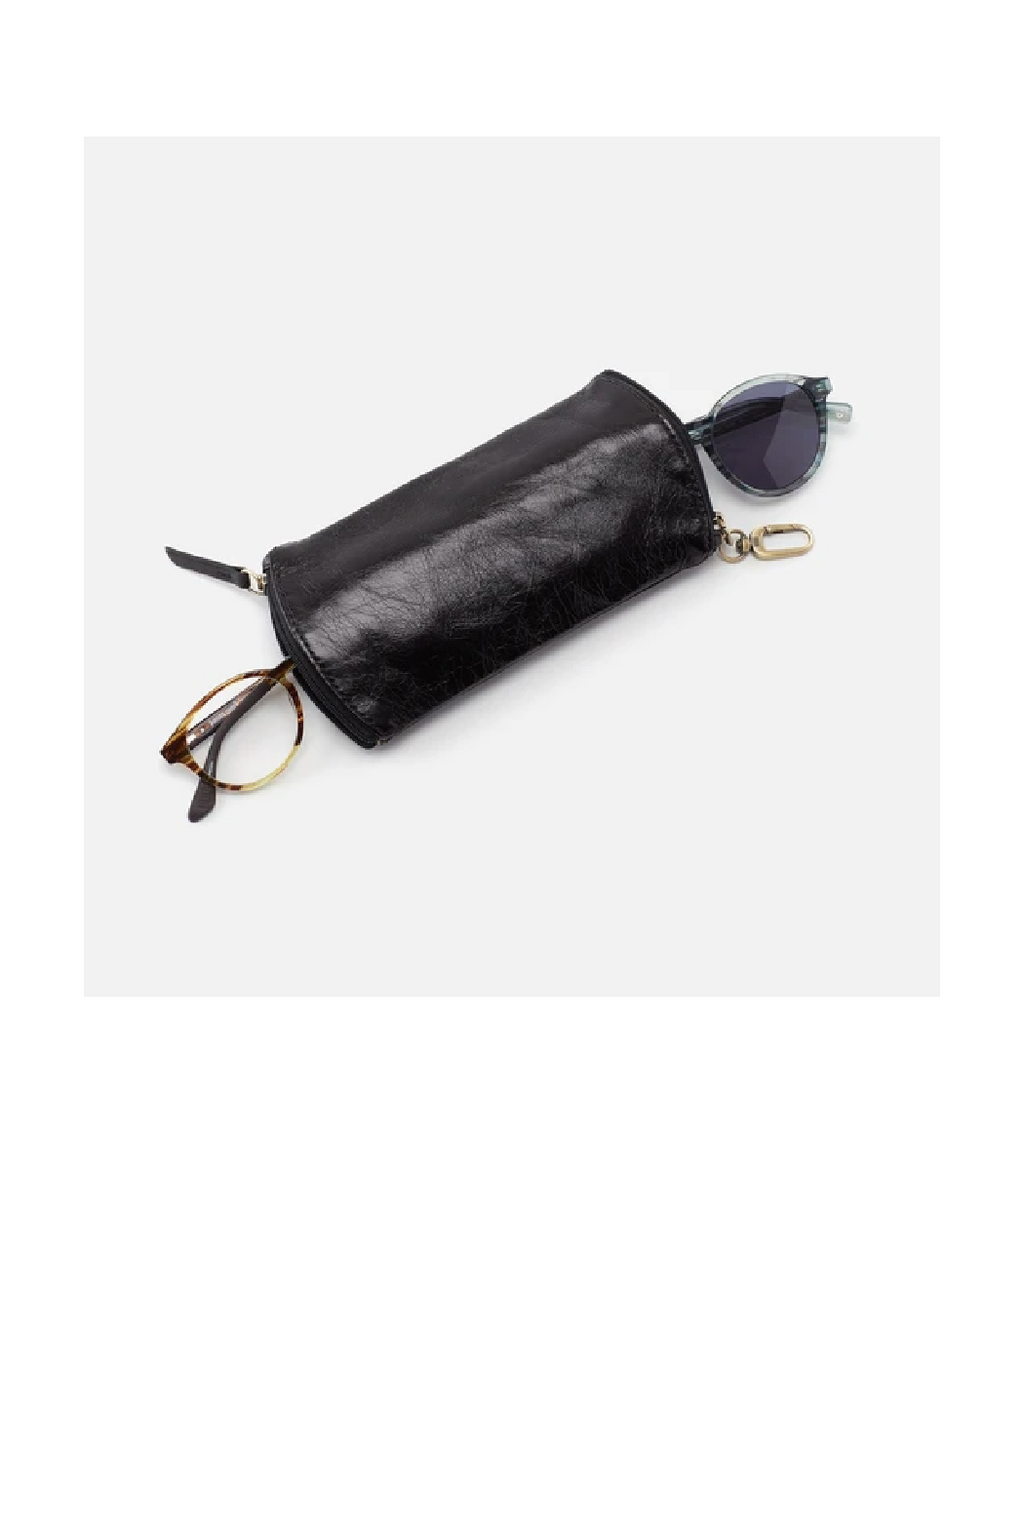 Hobo Spark Glasses Case - Black Vintage